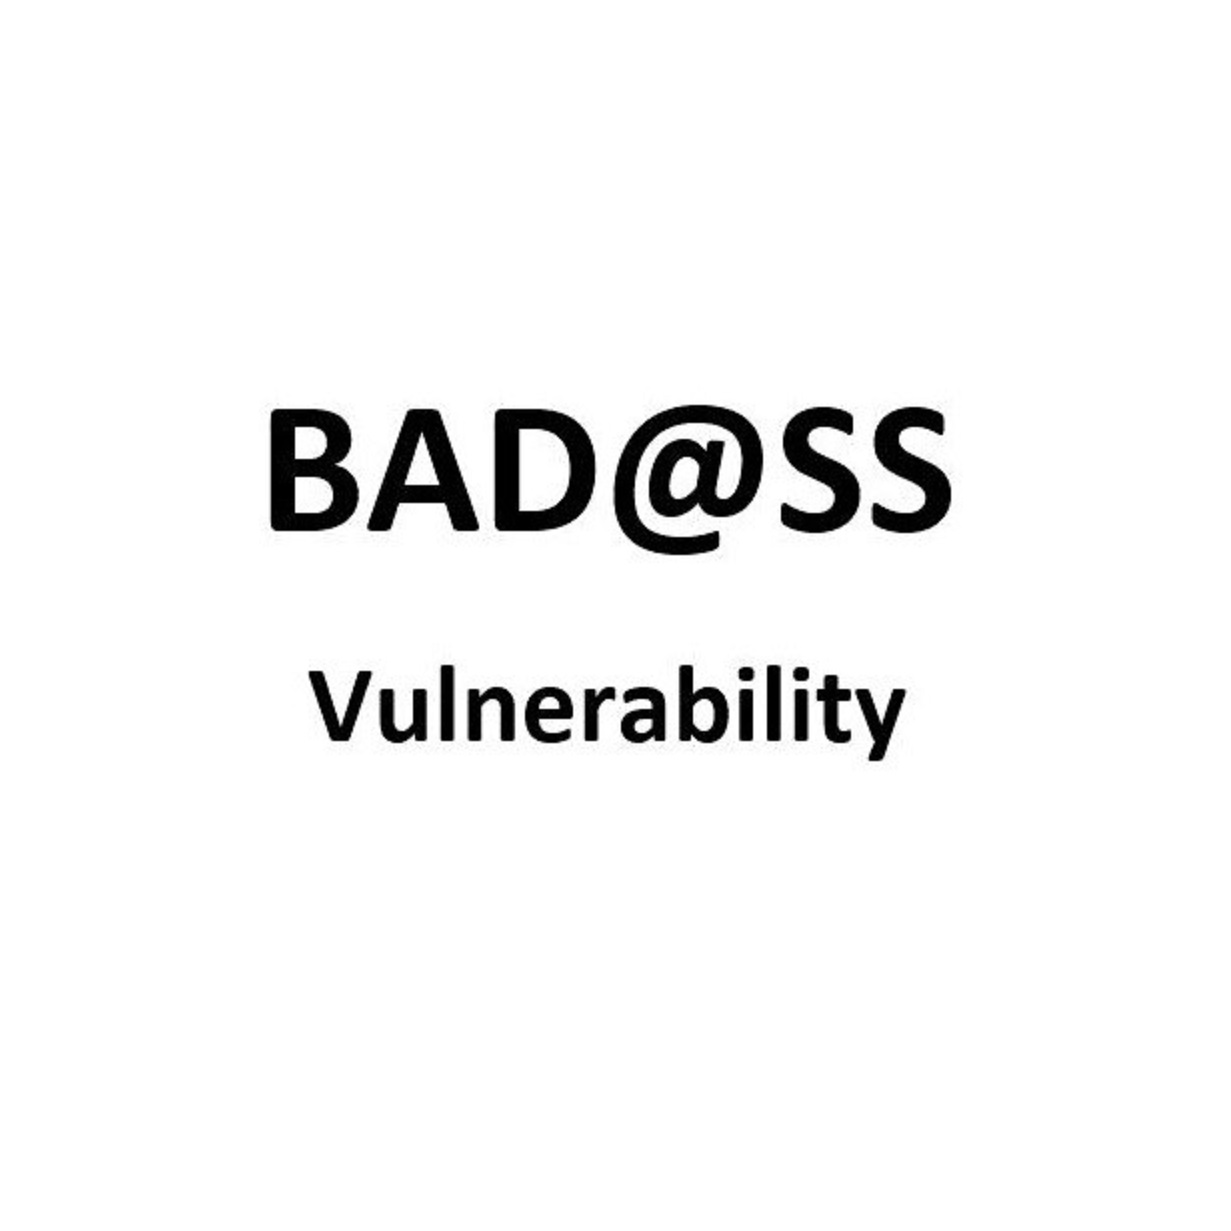 bad@ss vulnerability